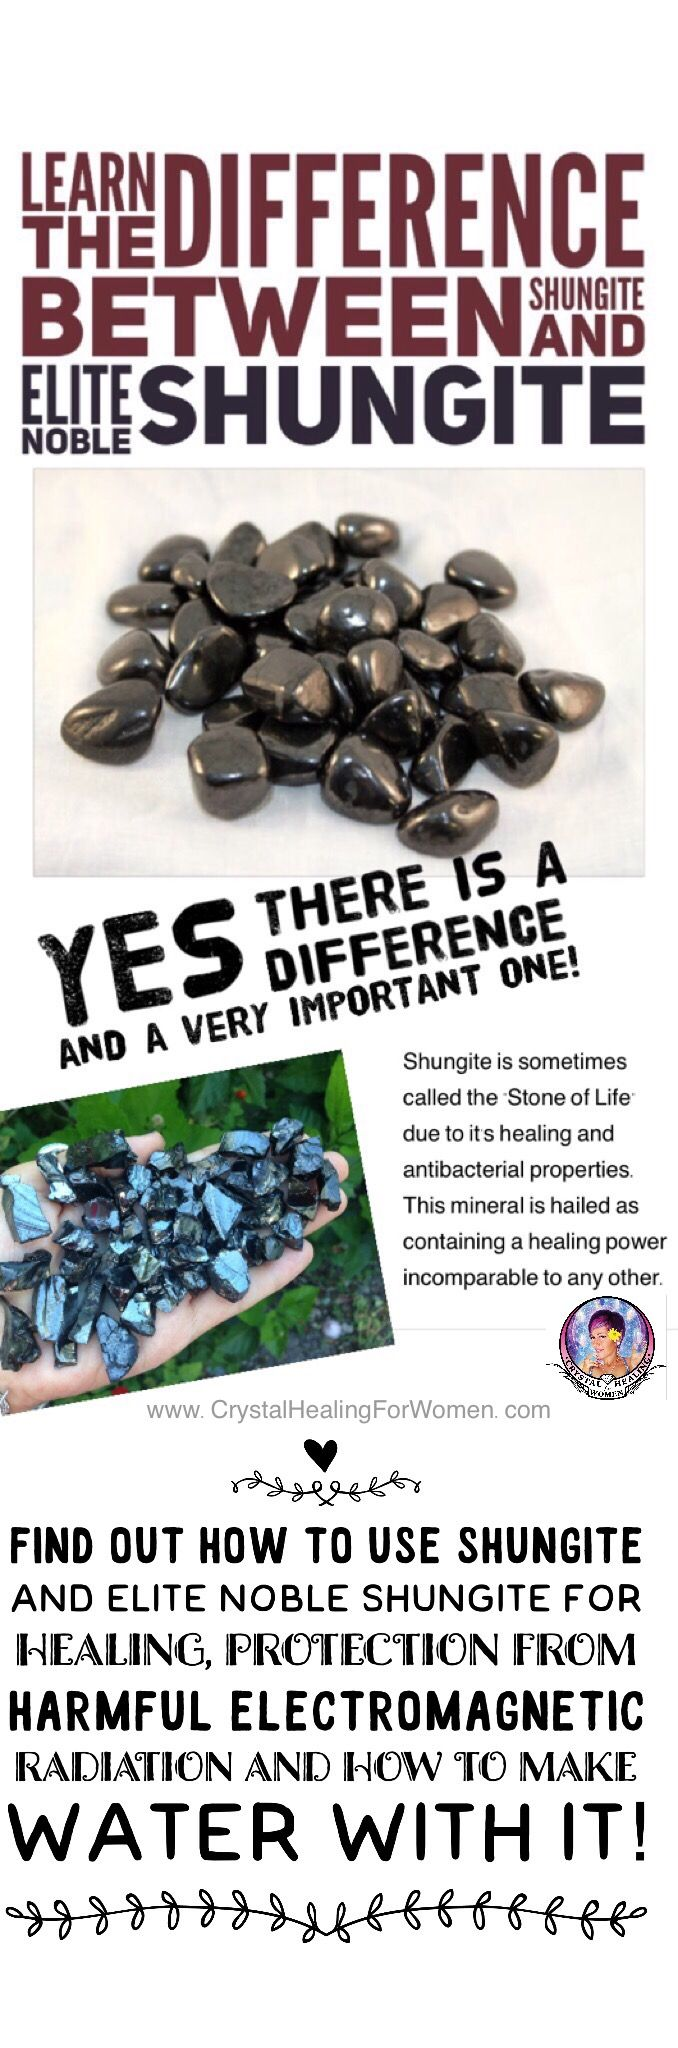 Learn The Difference between Shungite AND Elite Noble Shungite. For healing, harmful electromagnetic radiation and to make water!